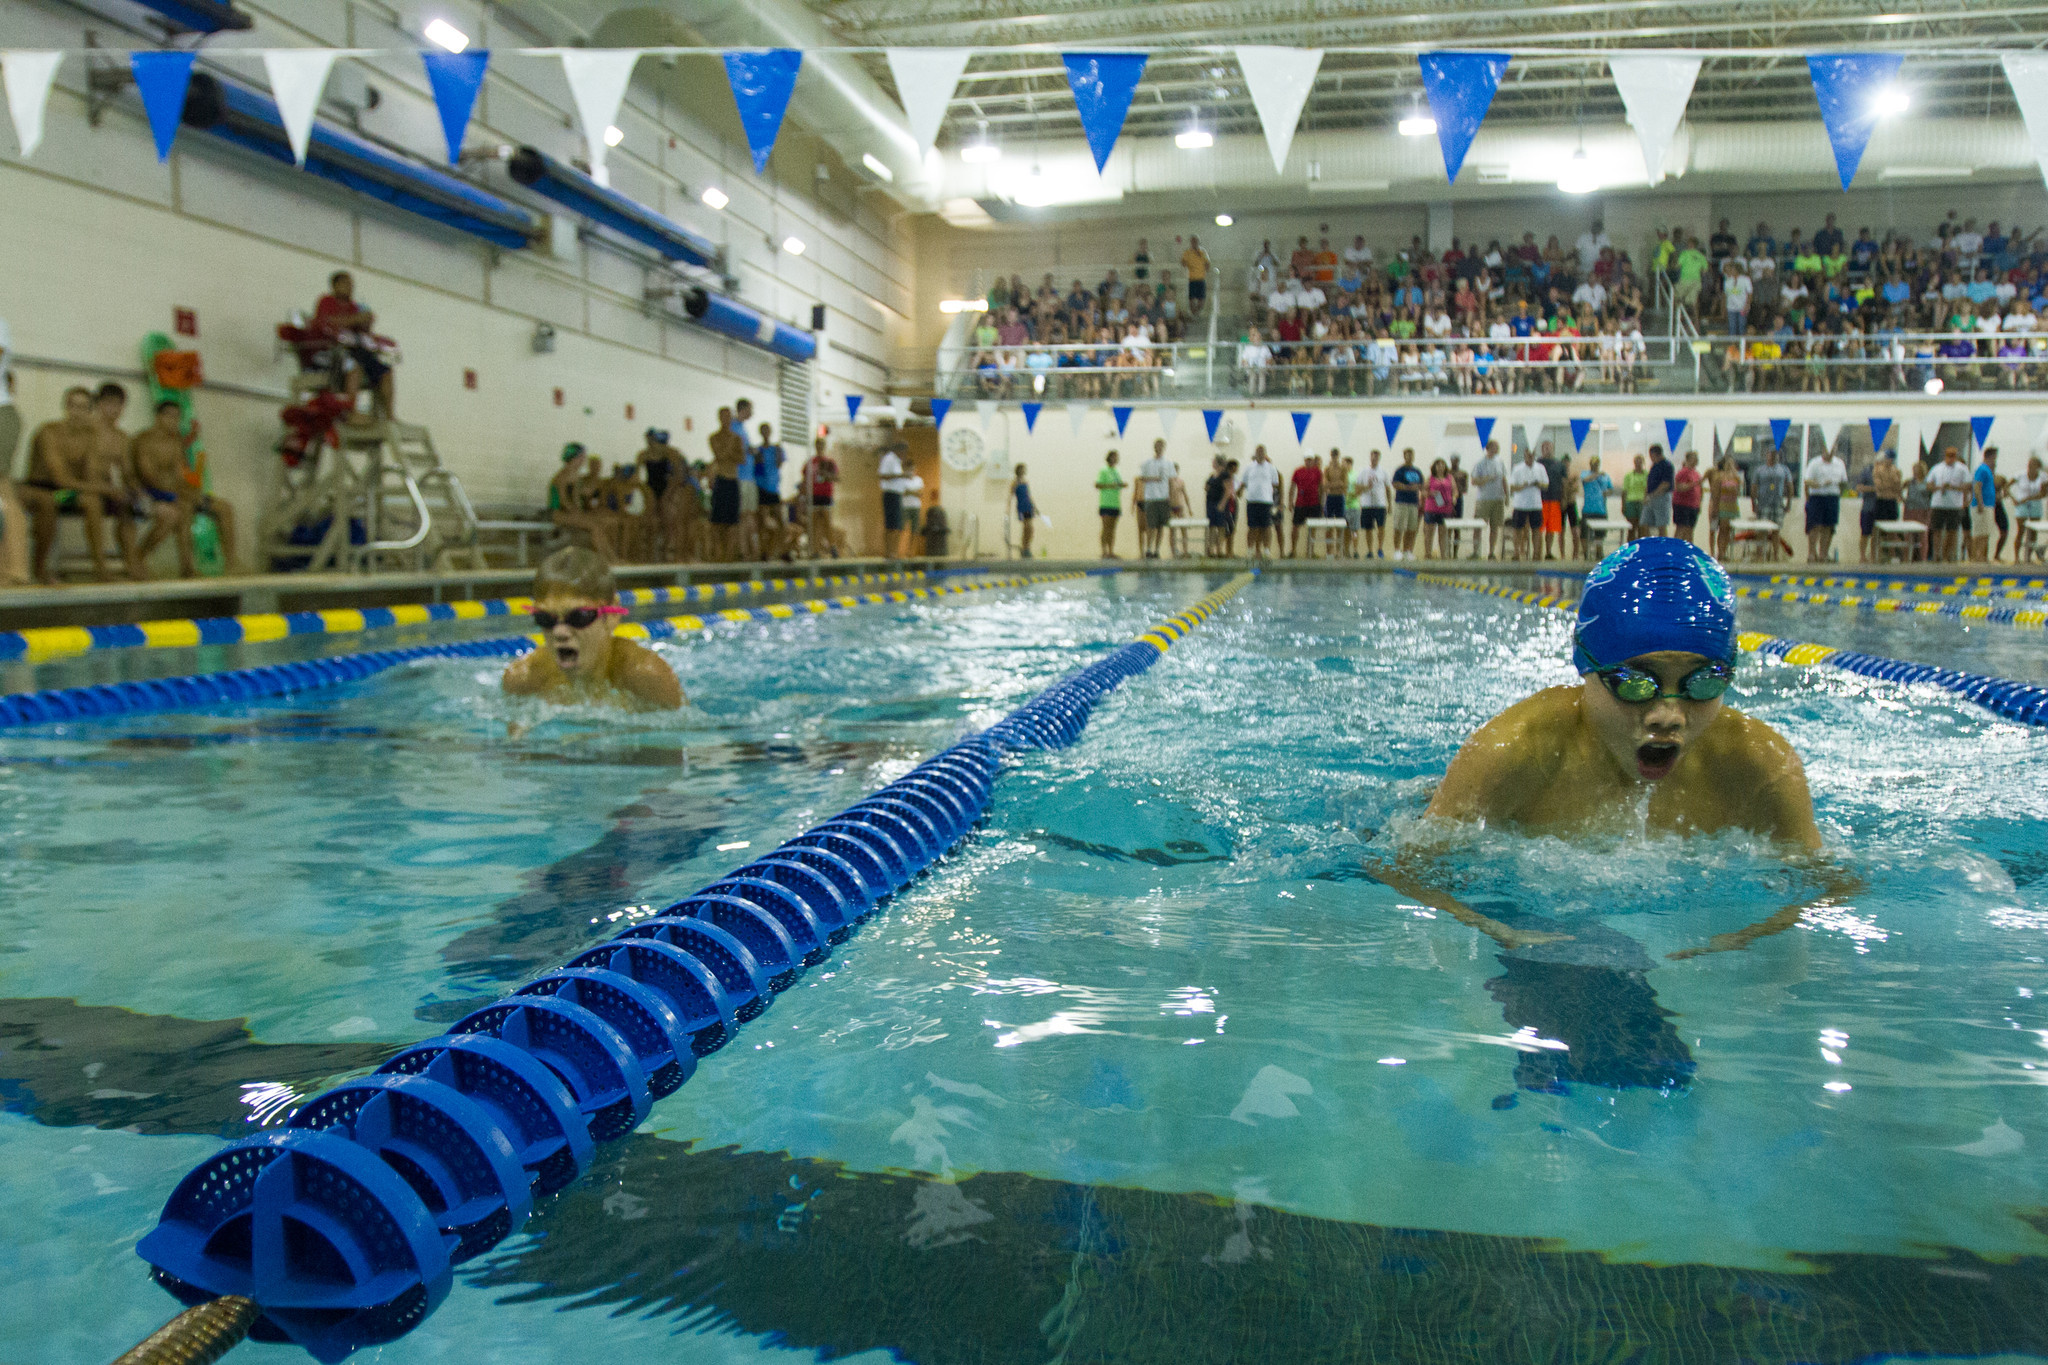 kecoughtan invitational swim meet 2015